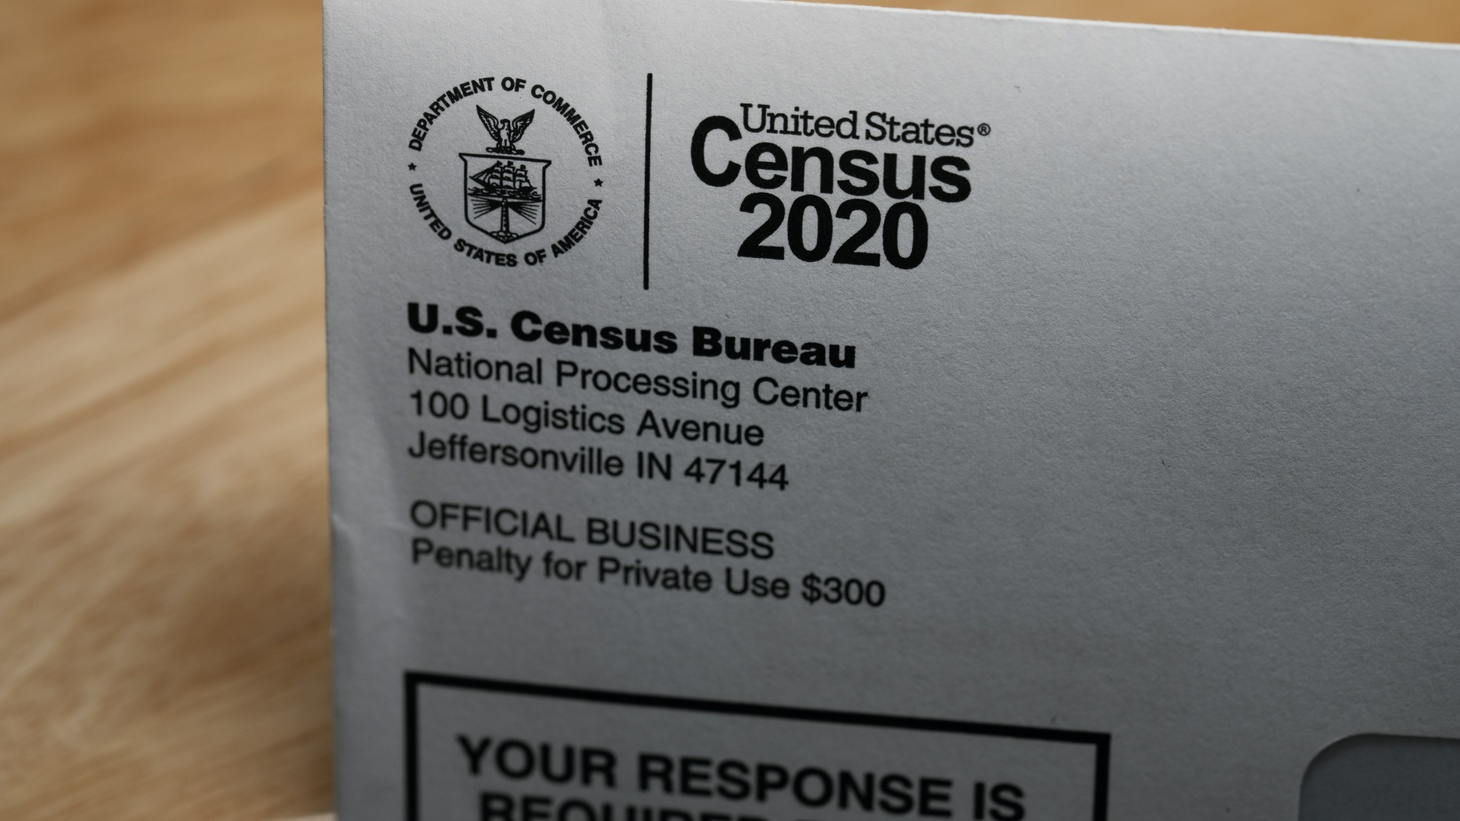 President Trump is ending the 2020 Census count early. He says the deadline needed to be moved up to give Census officials enough time to process the data before the end of the year.